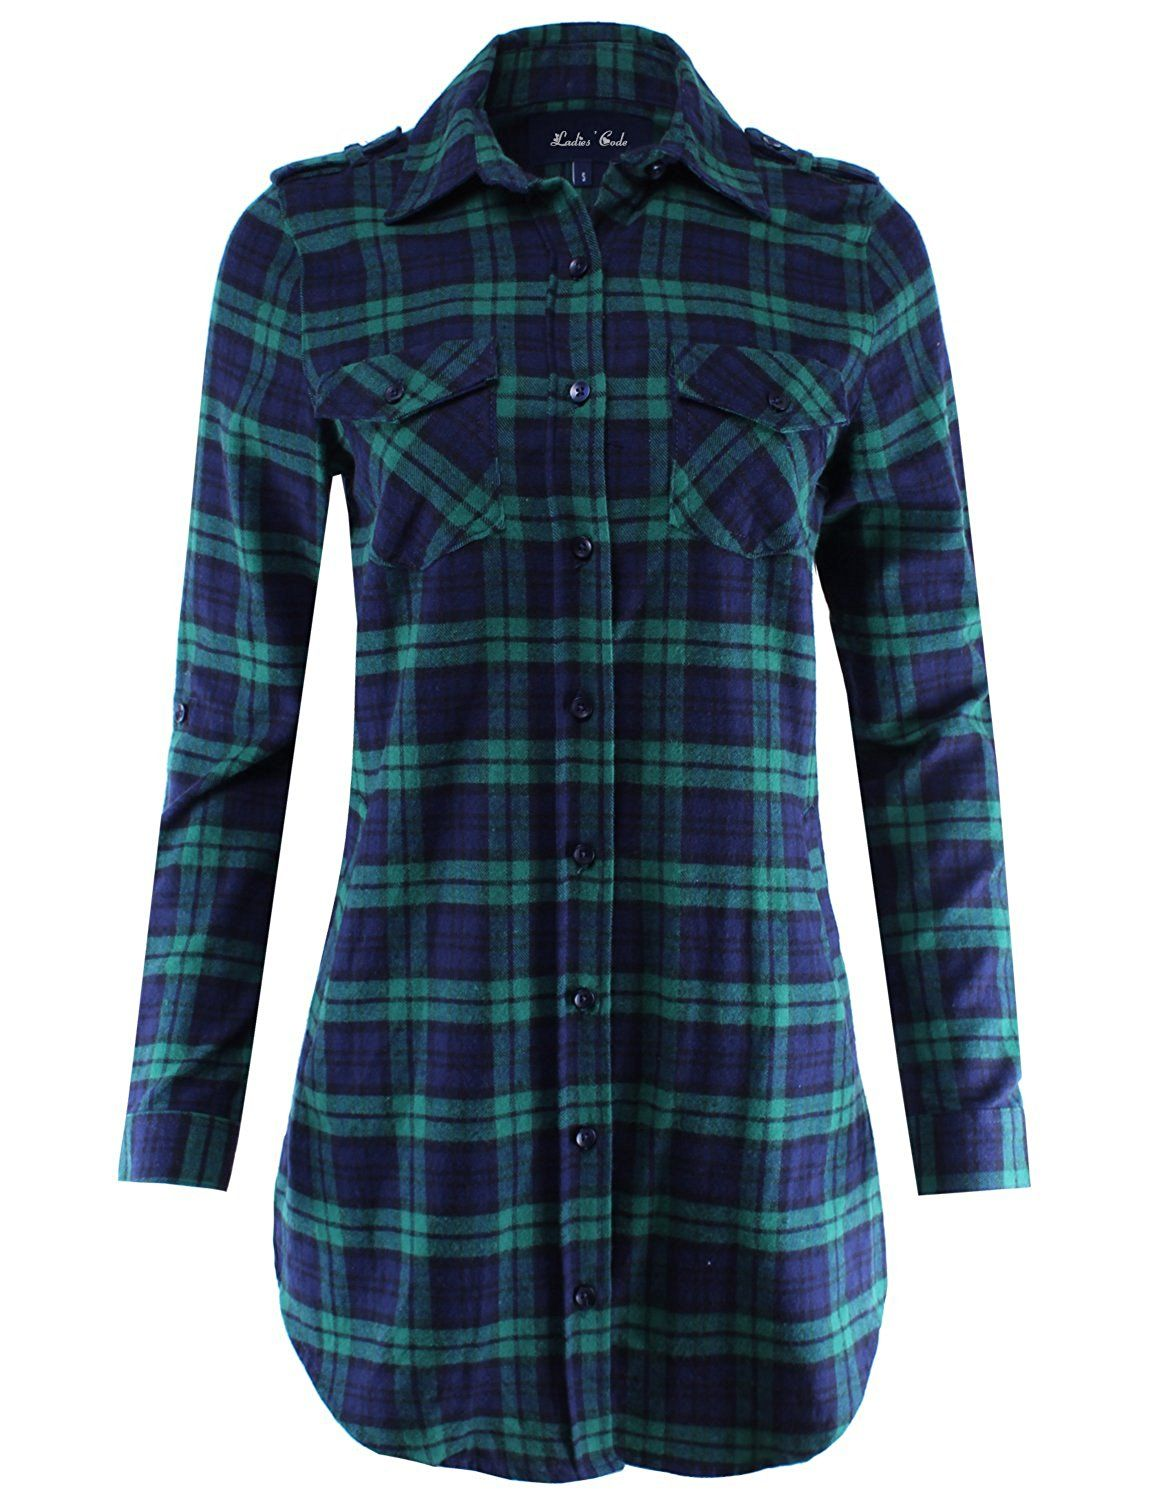 Flannel dress for women  Ladiesu Code Womenus Flannel Plaid Shirt Dress with Roll Up Sleeve